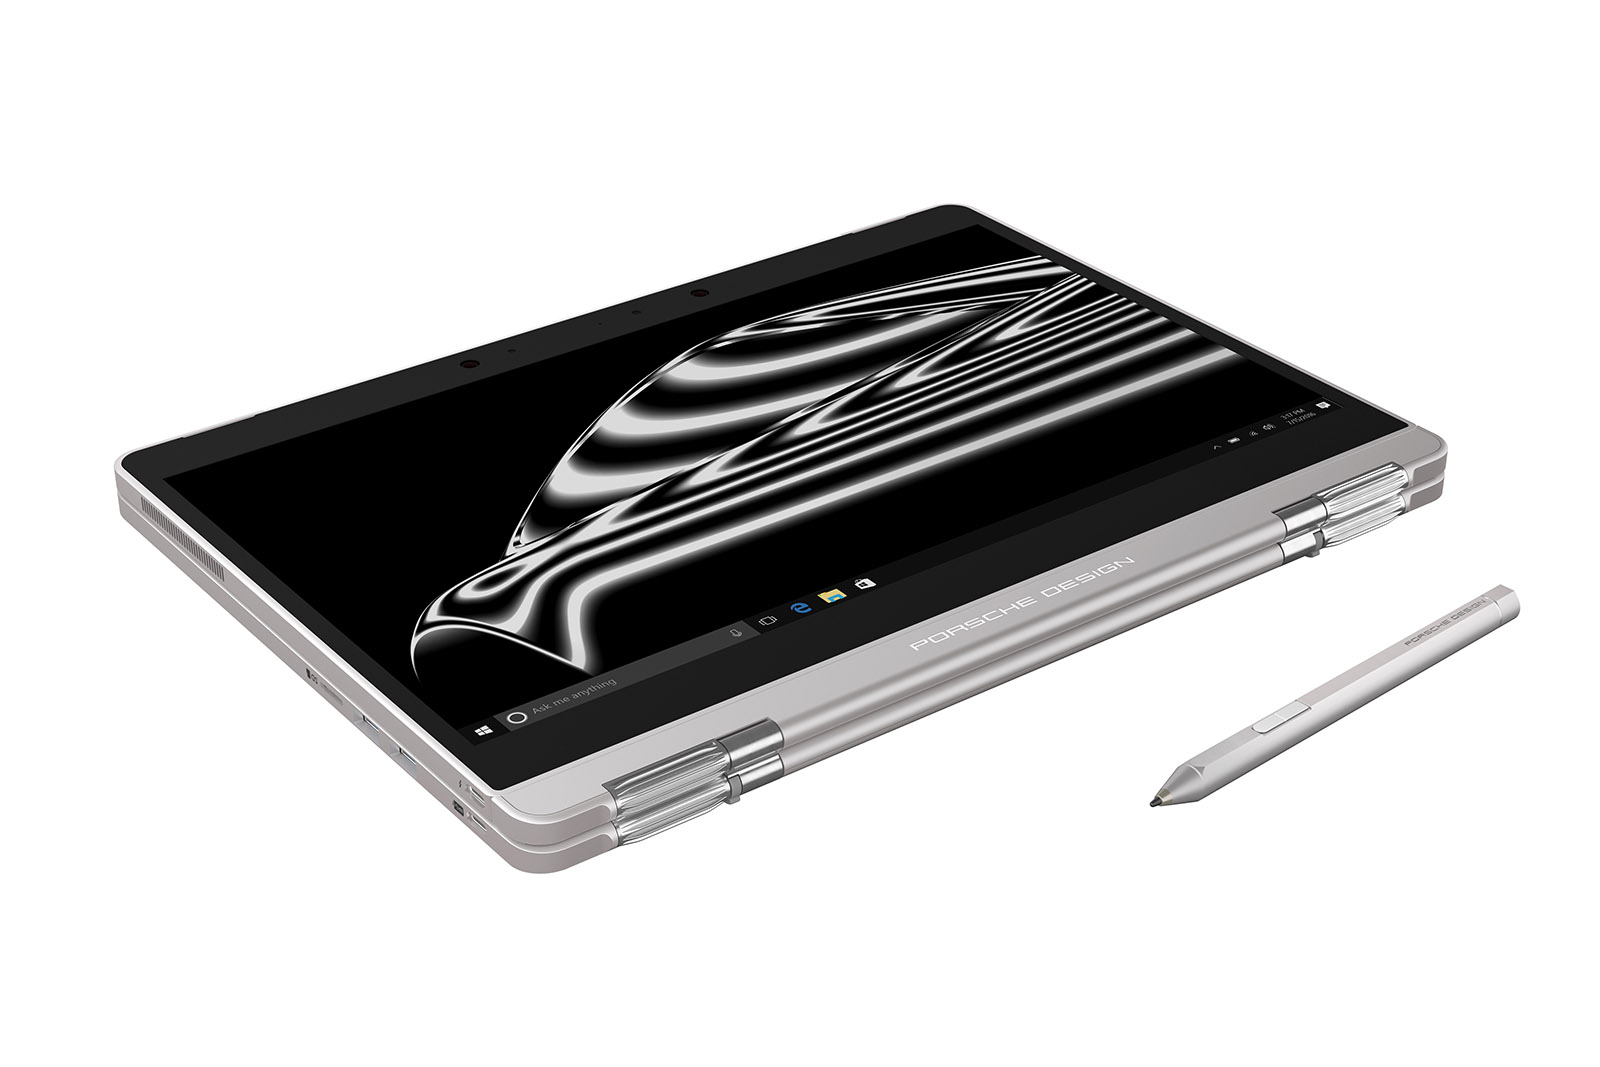 Edles Ultra-Notebook: Das Porsche Design BOOK ONE 5